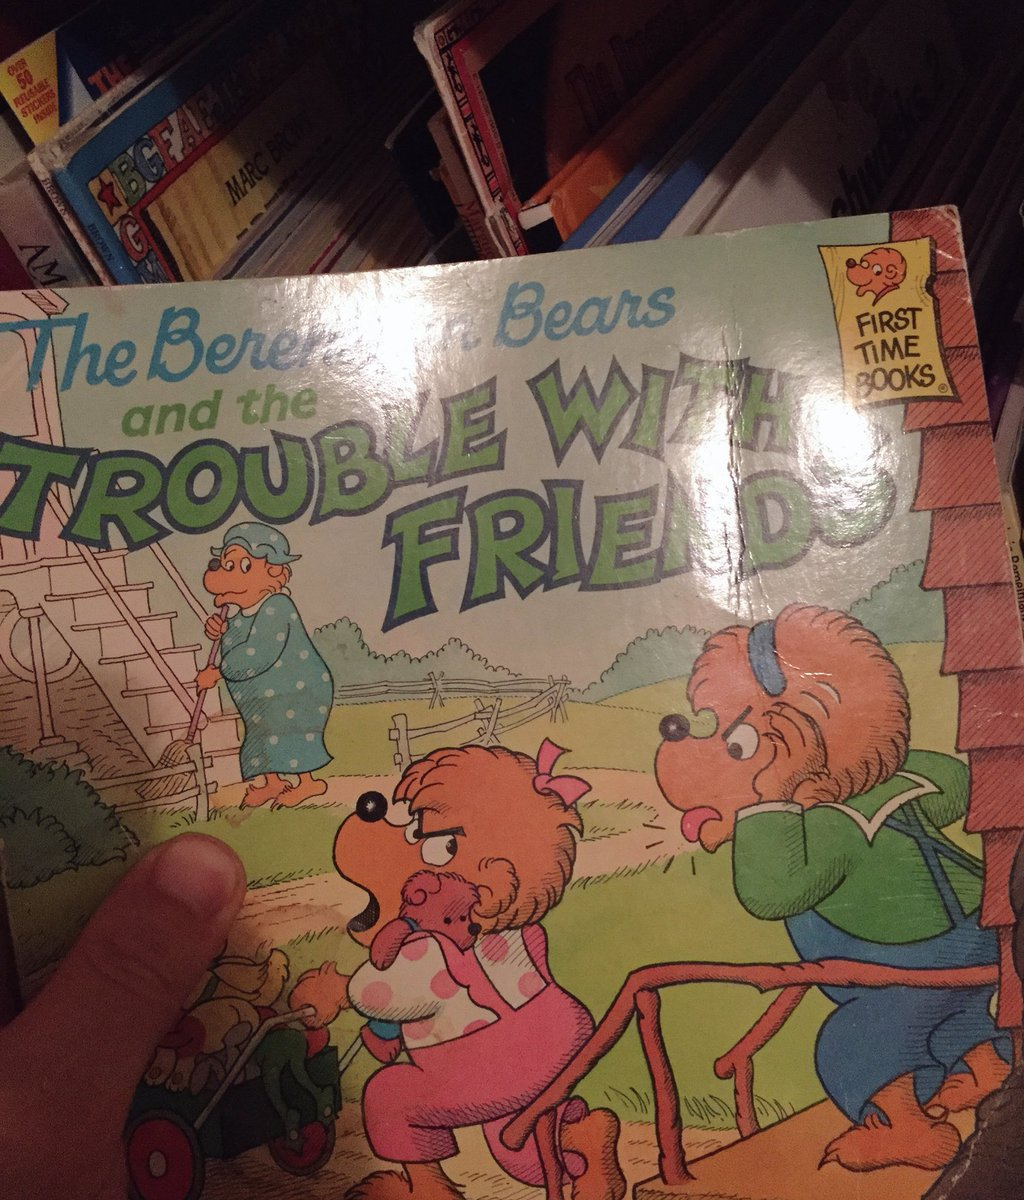 Alright. I tracked down a FIRST EDITION so we can finally put this Berenstein/Berenstain debate to REST. PROOF: https://t.co/DffMpEuX34